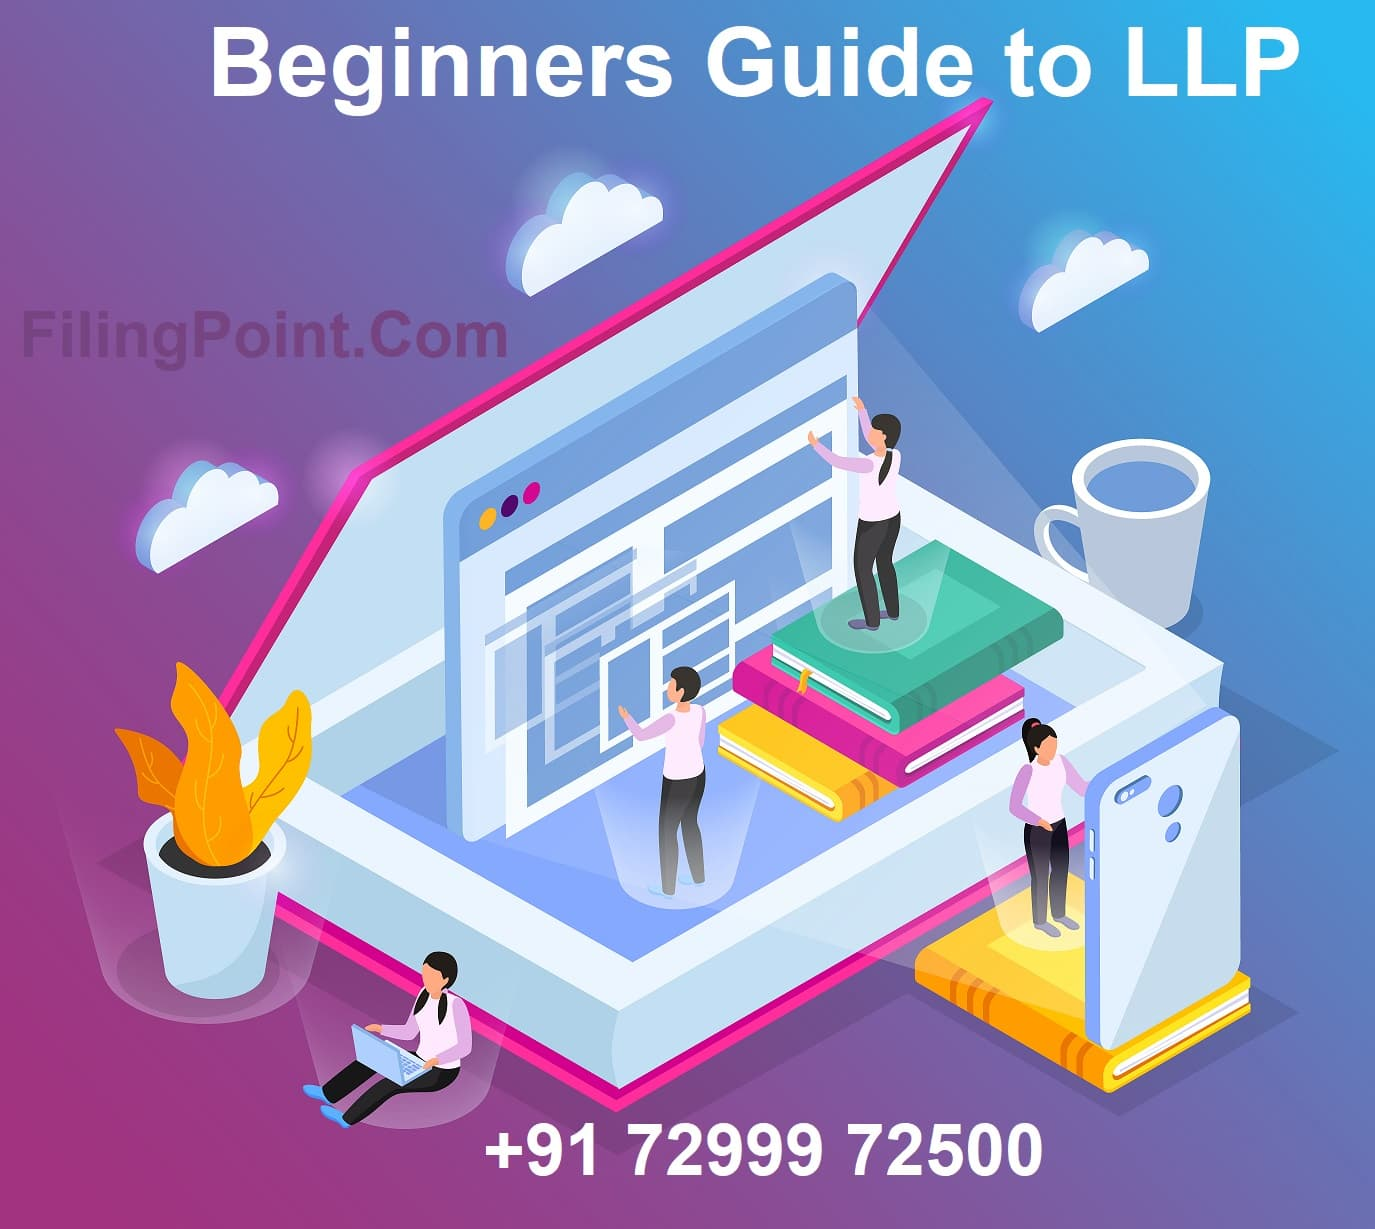 Beginners Guide to LLP step by steps